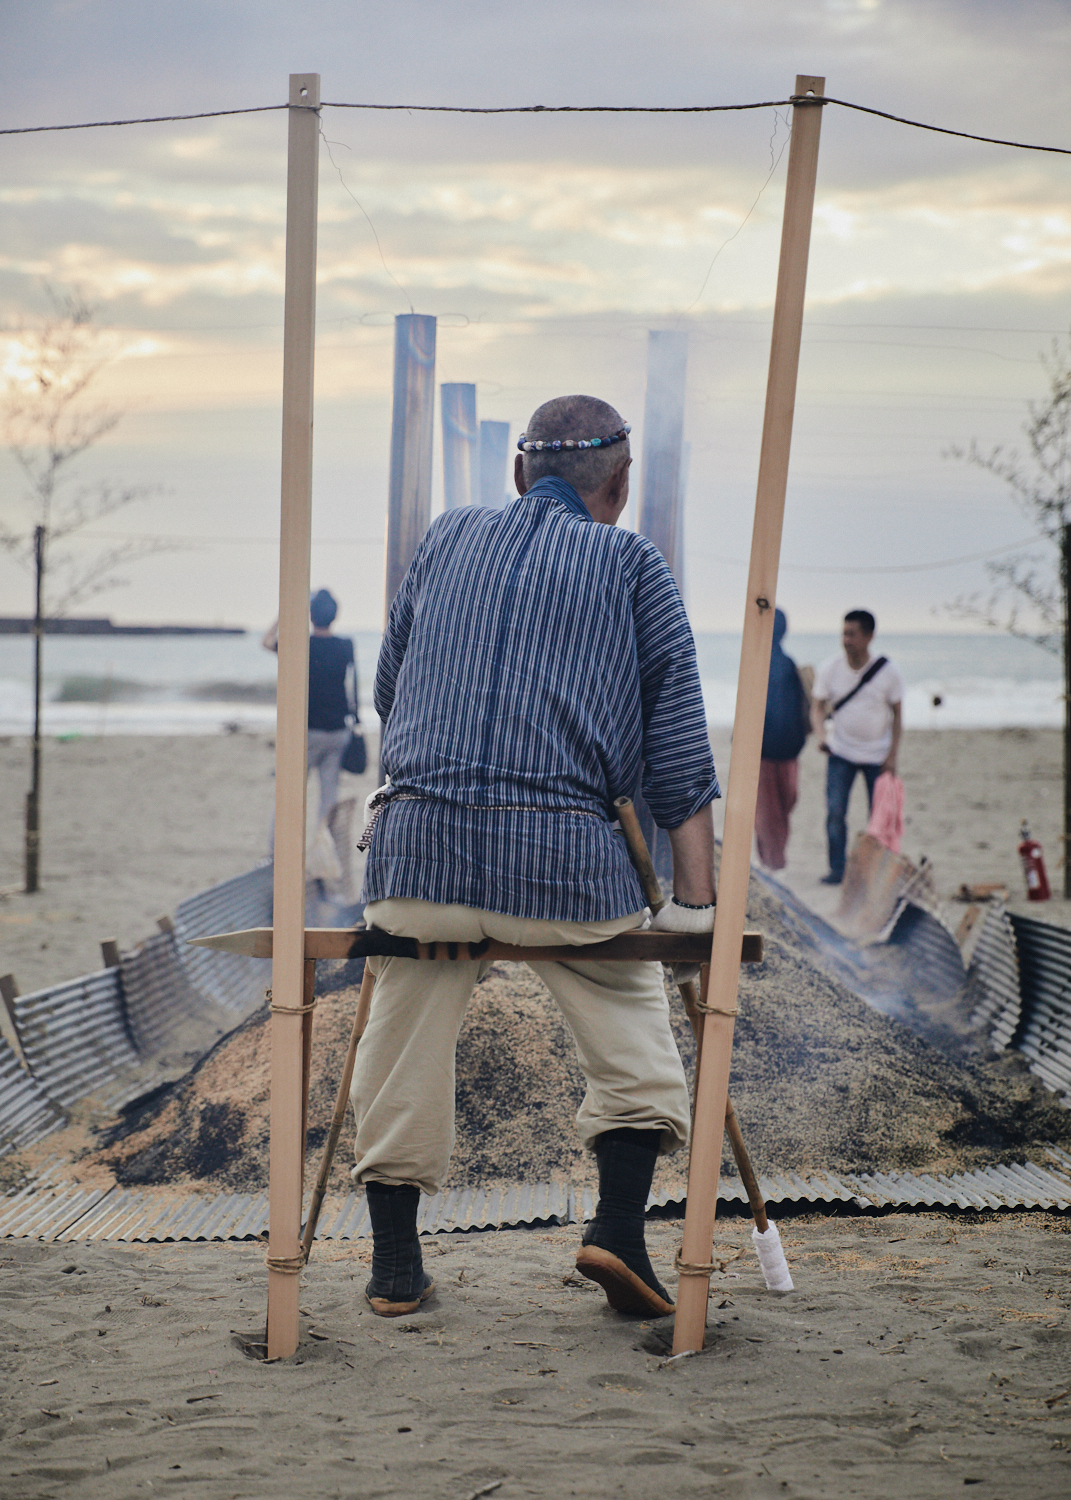 Master Iida overseas the slow burn of the wild kiln of noyaki, earthenware baking on Kanaiwa Beach in Kanazawa, Japan.